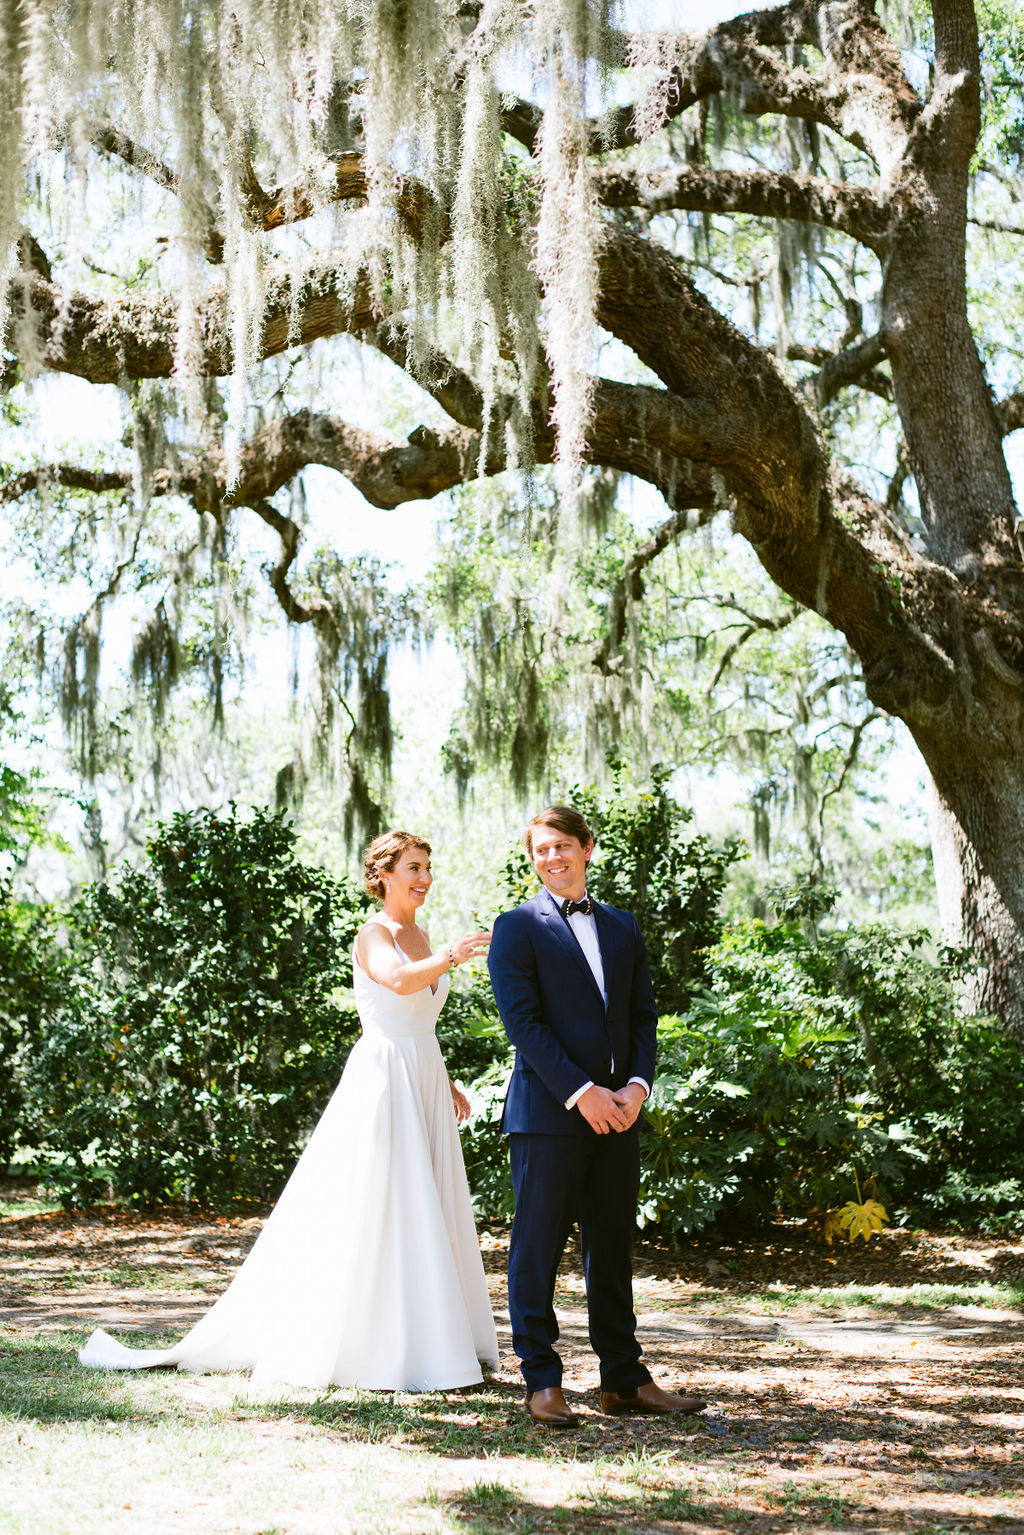 Coastal Edisto Island Wedding at Cypress Trees Plantation - Charleston Destination Luxury Wedding Planner - Scarlet Plan & Design (58).jpg